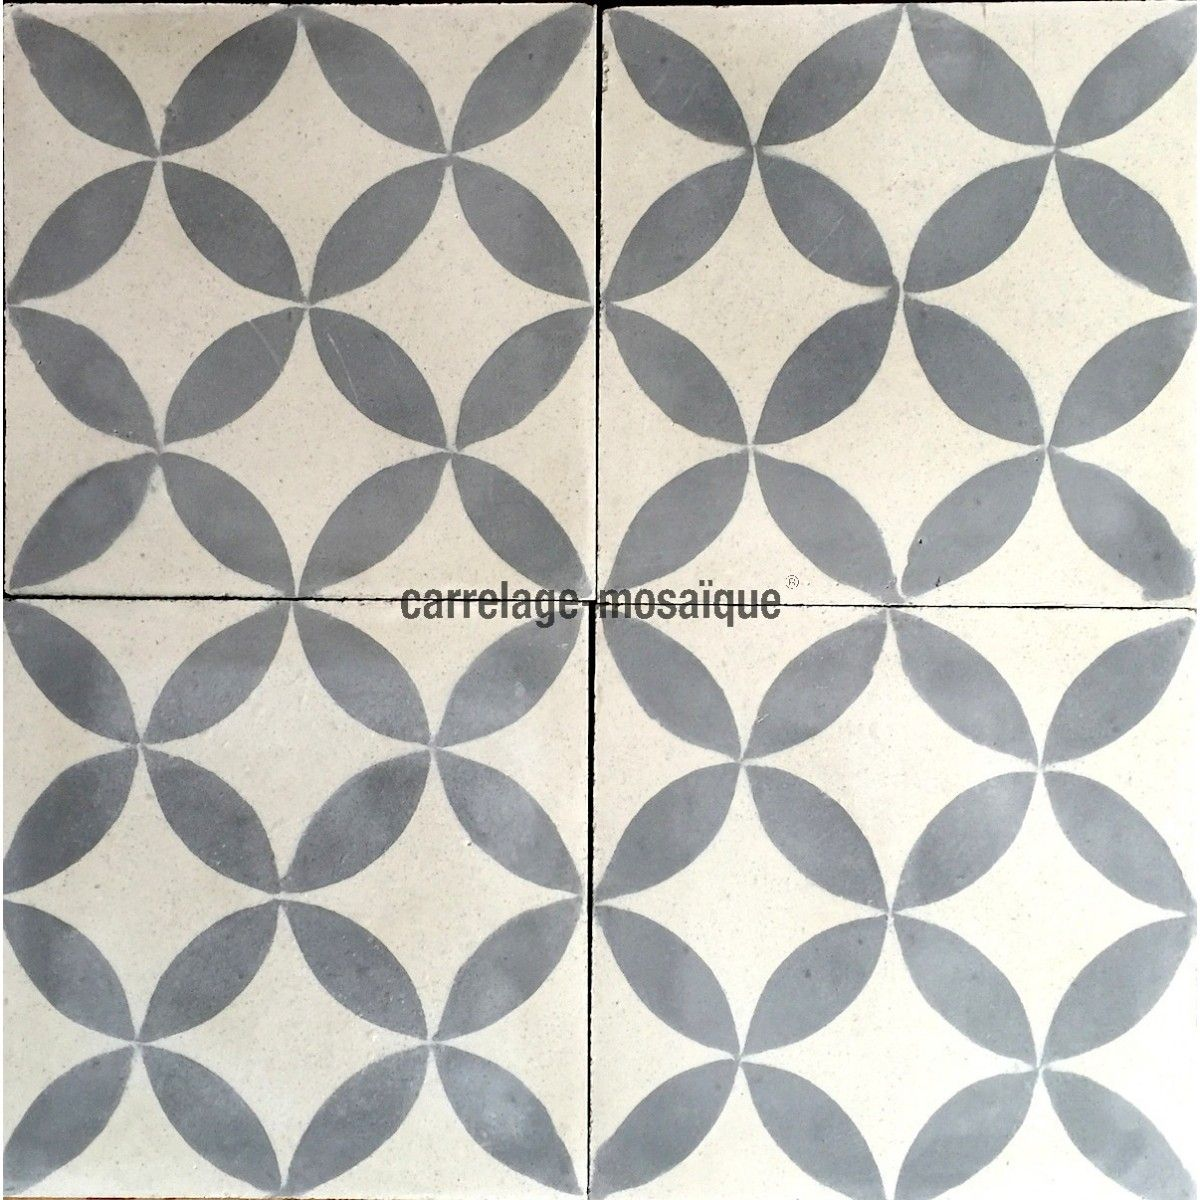 Carrelage ciment pas cher 1m2 modele sampa gris for Carrelage ciment